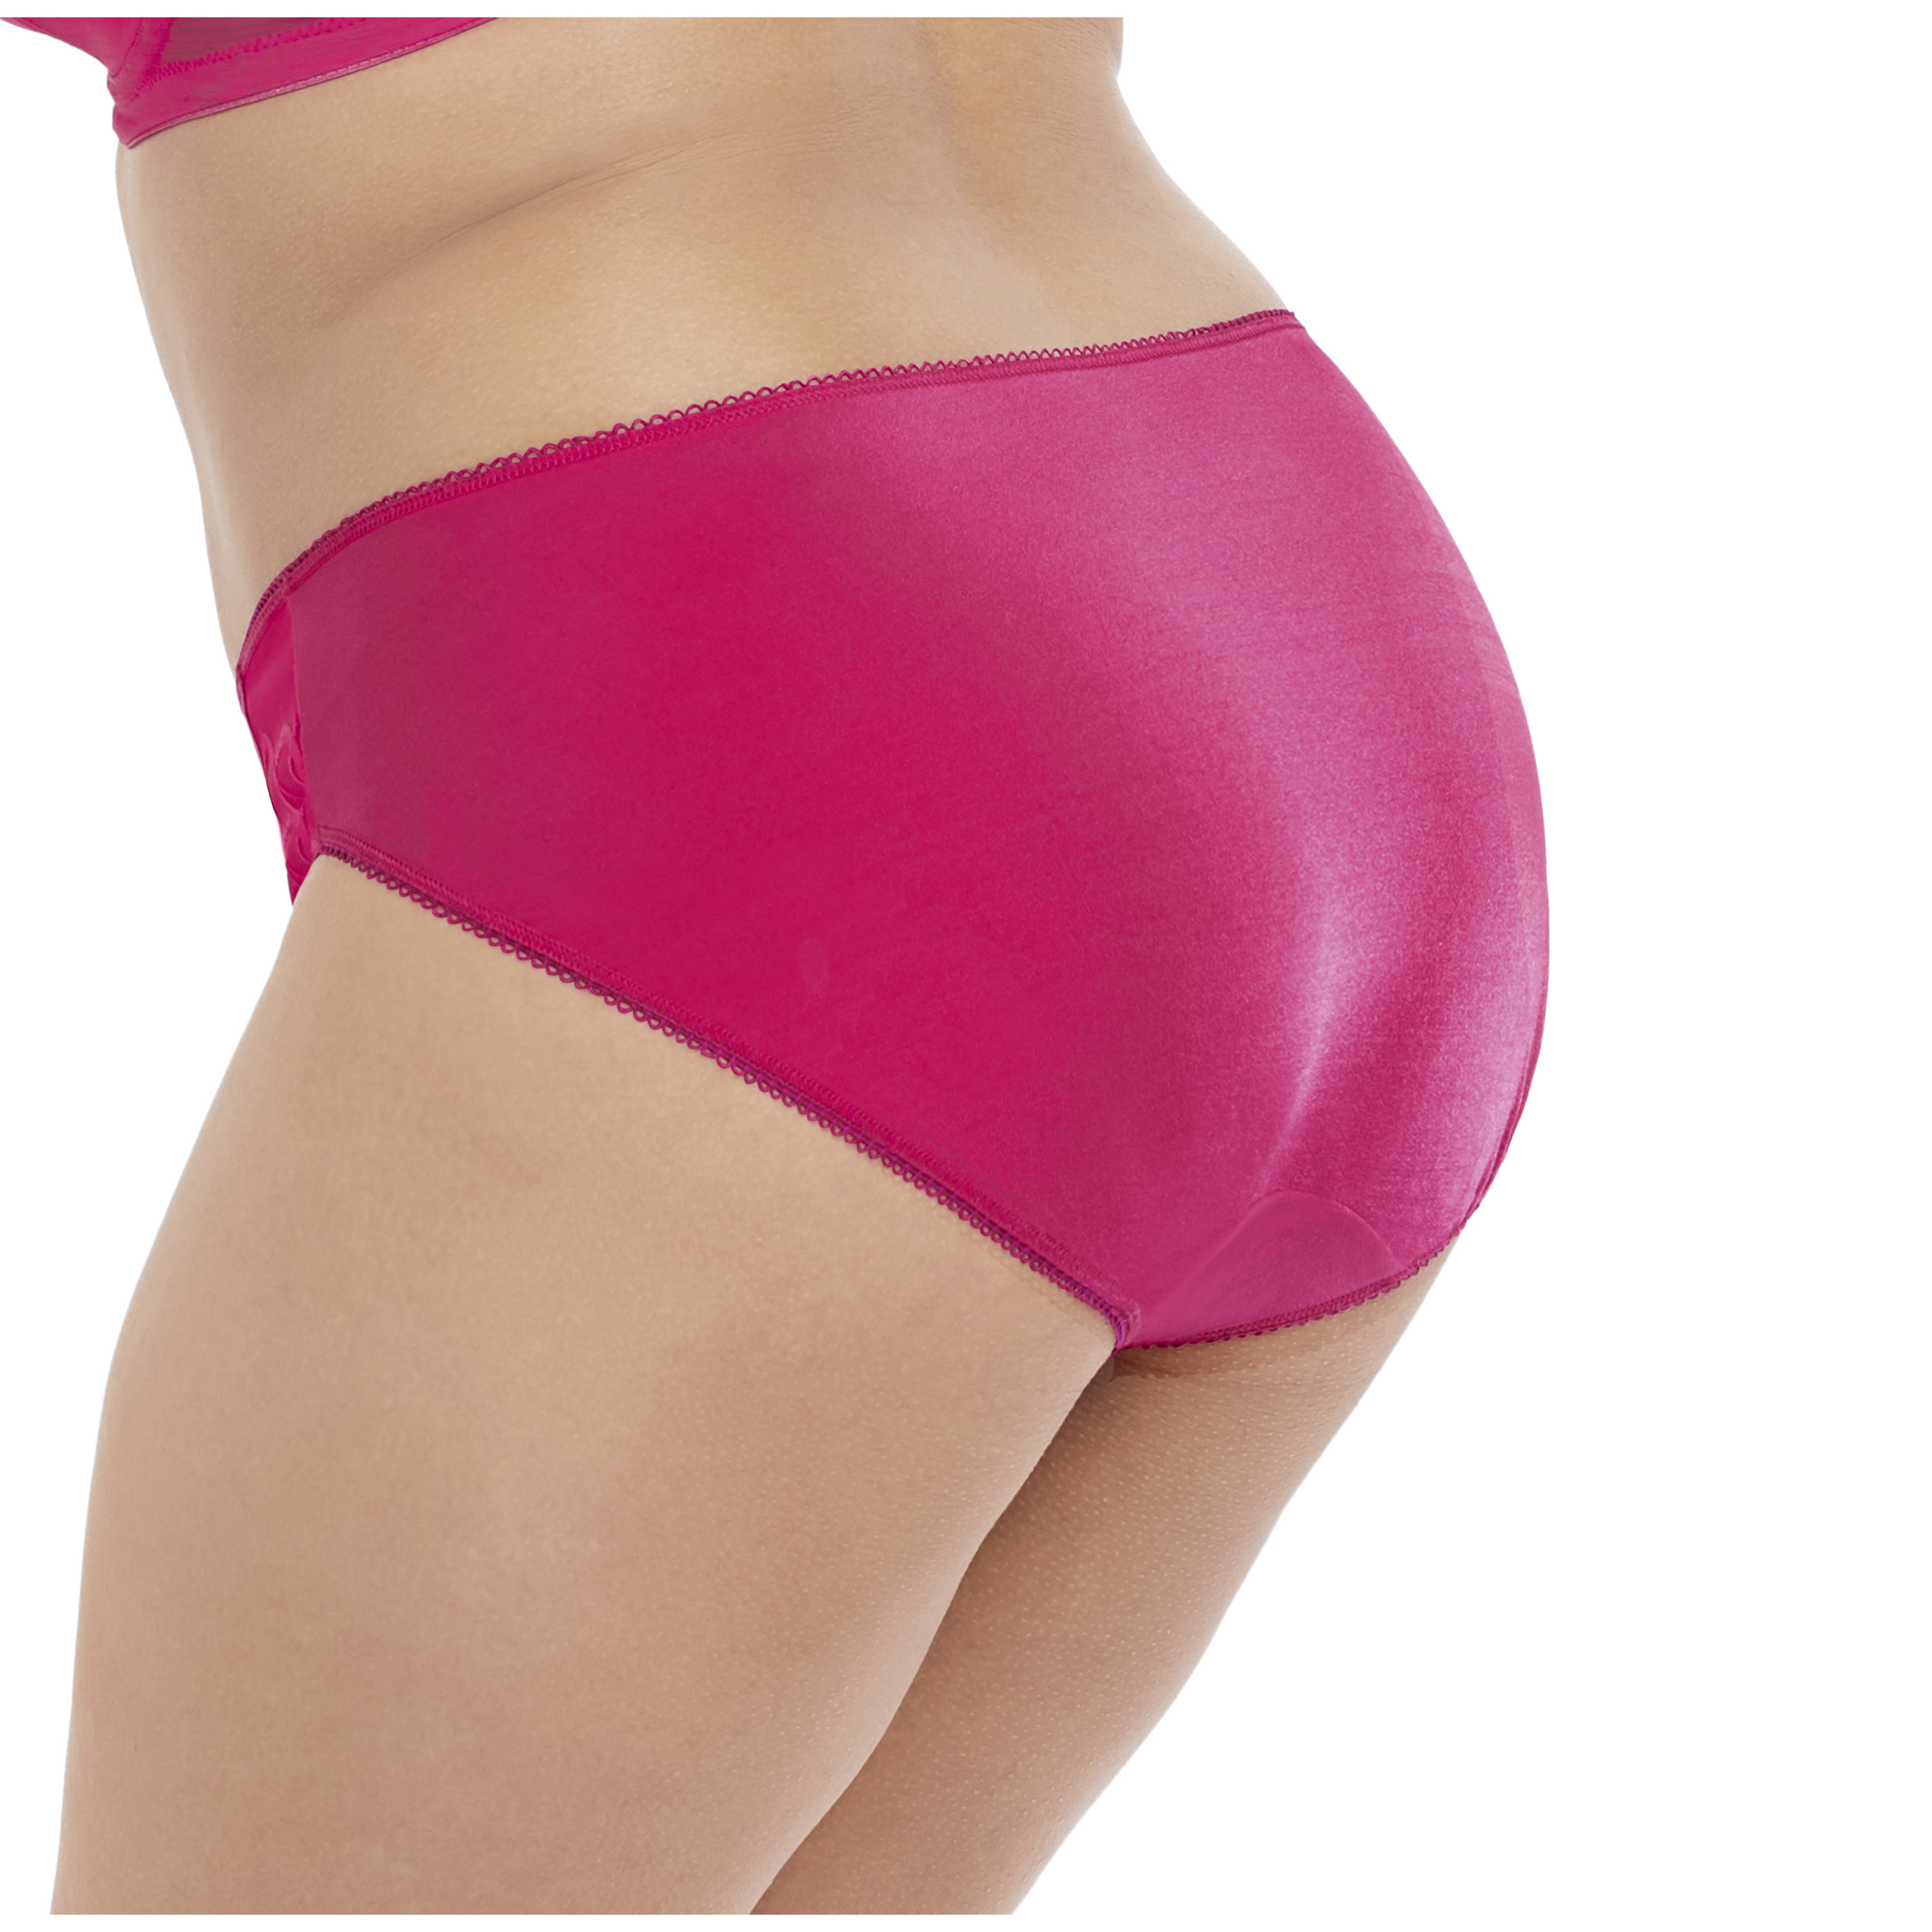 Elomi Cate hot Pink briefs